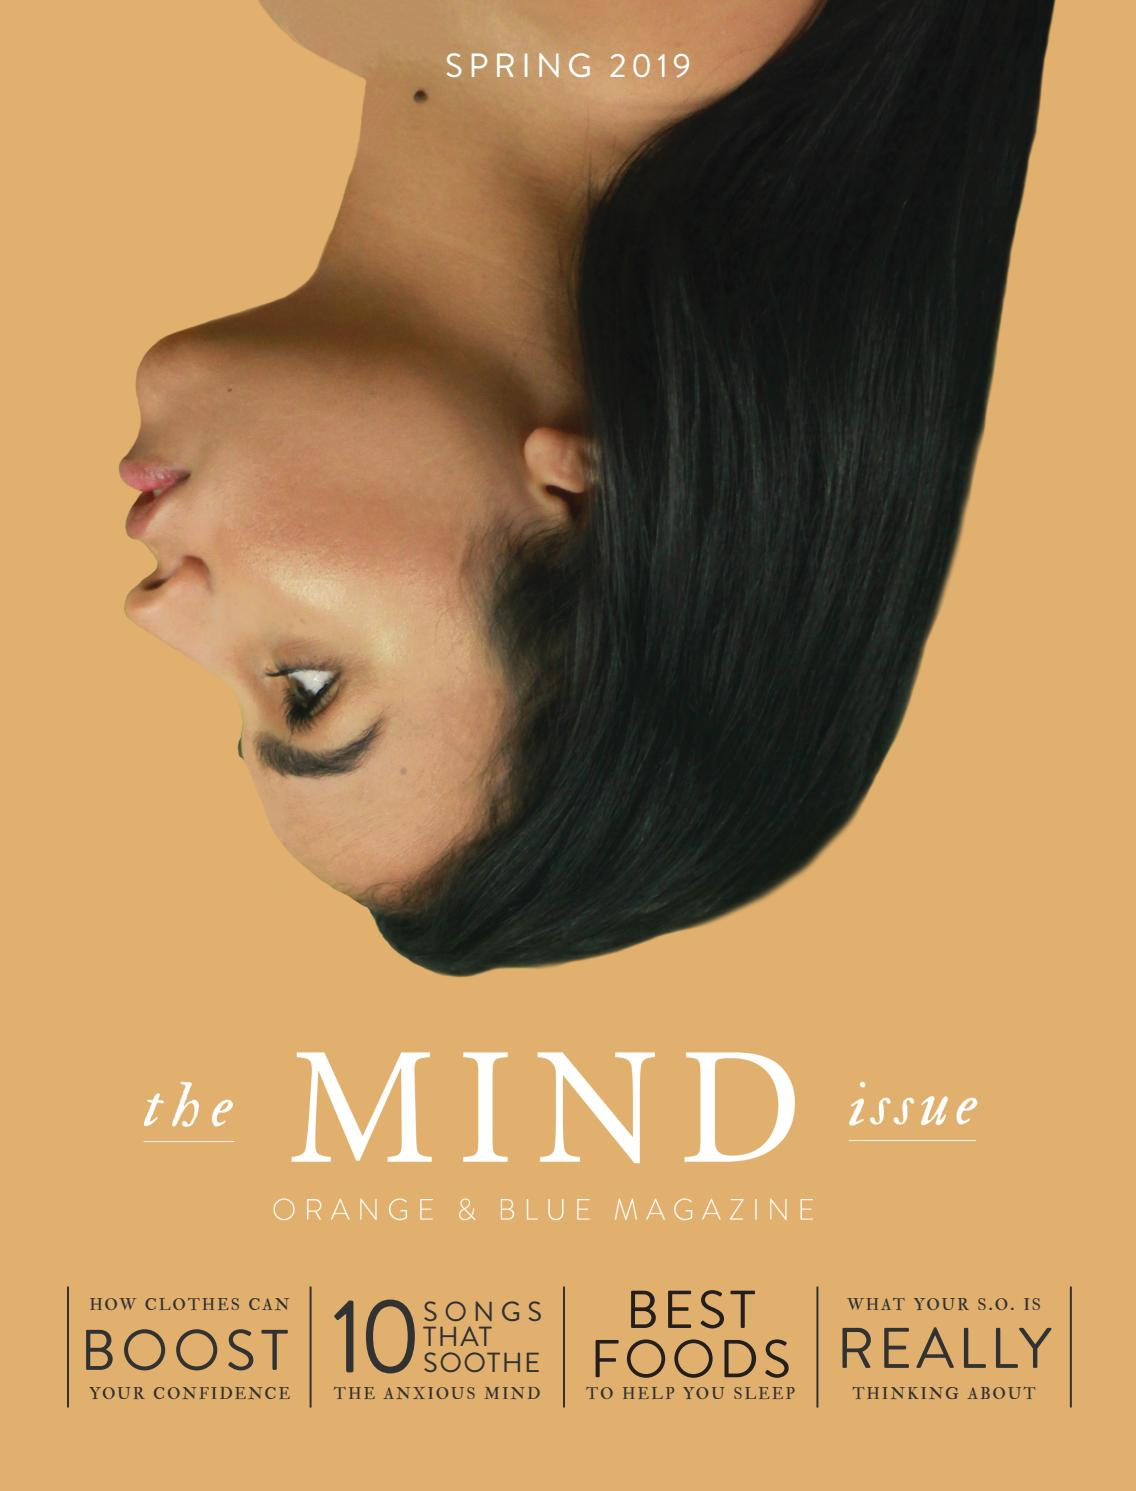 Orange and Blue magazine - Spring 2019 - The Mind Issue by